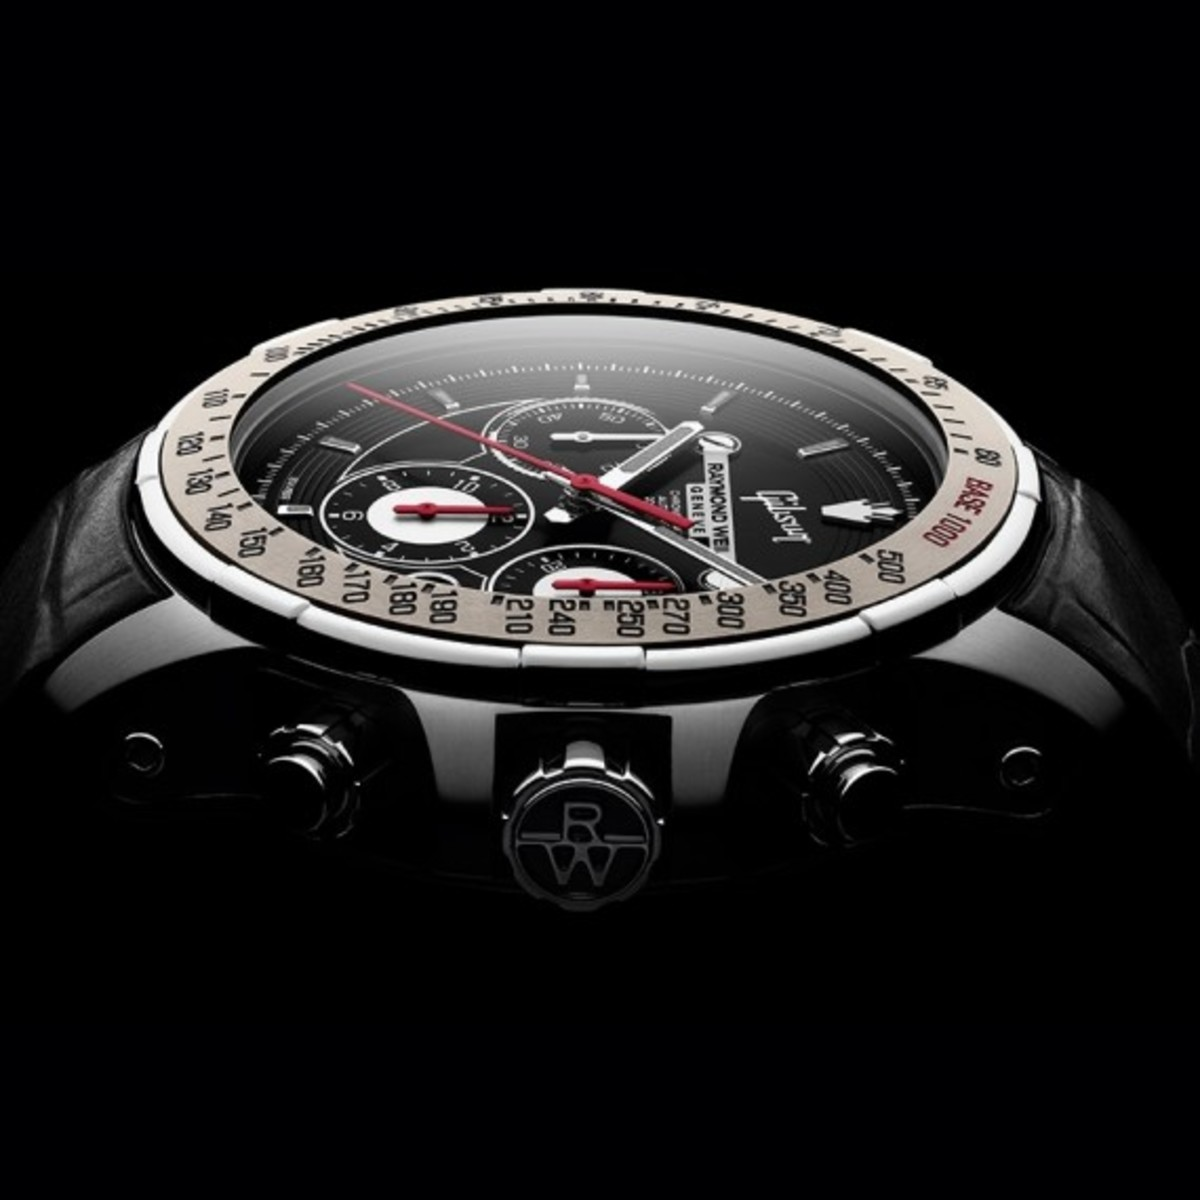 Raymond Weil Nabucco Limited Edition Watch - Inspired by Gibson Guitars - 3